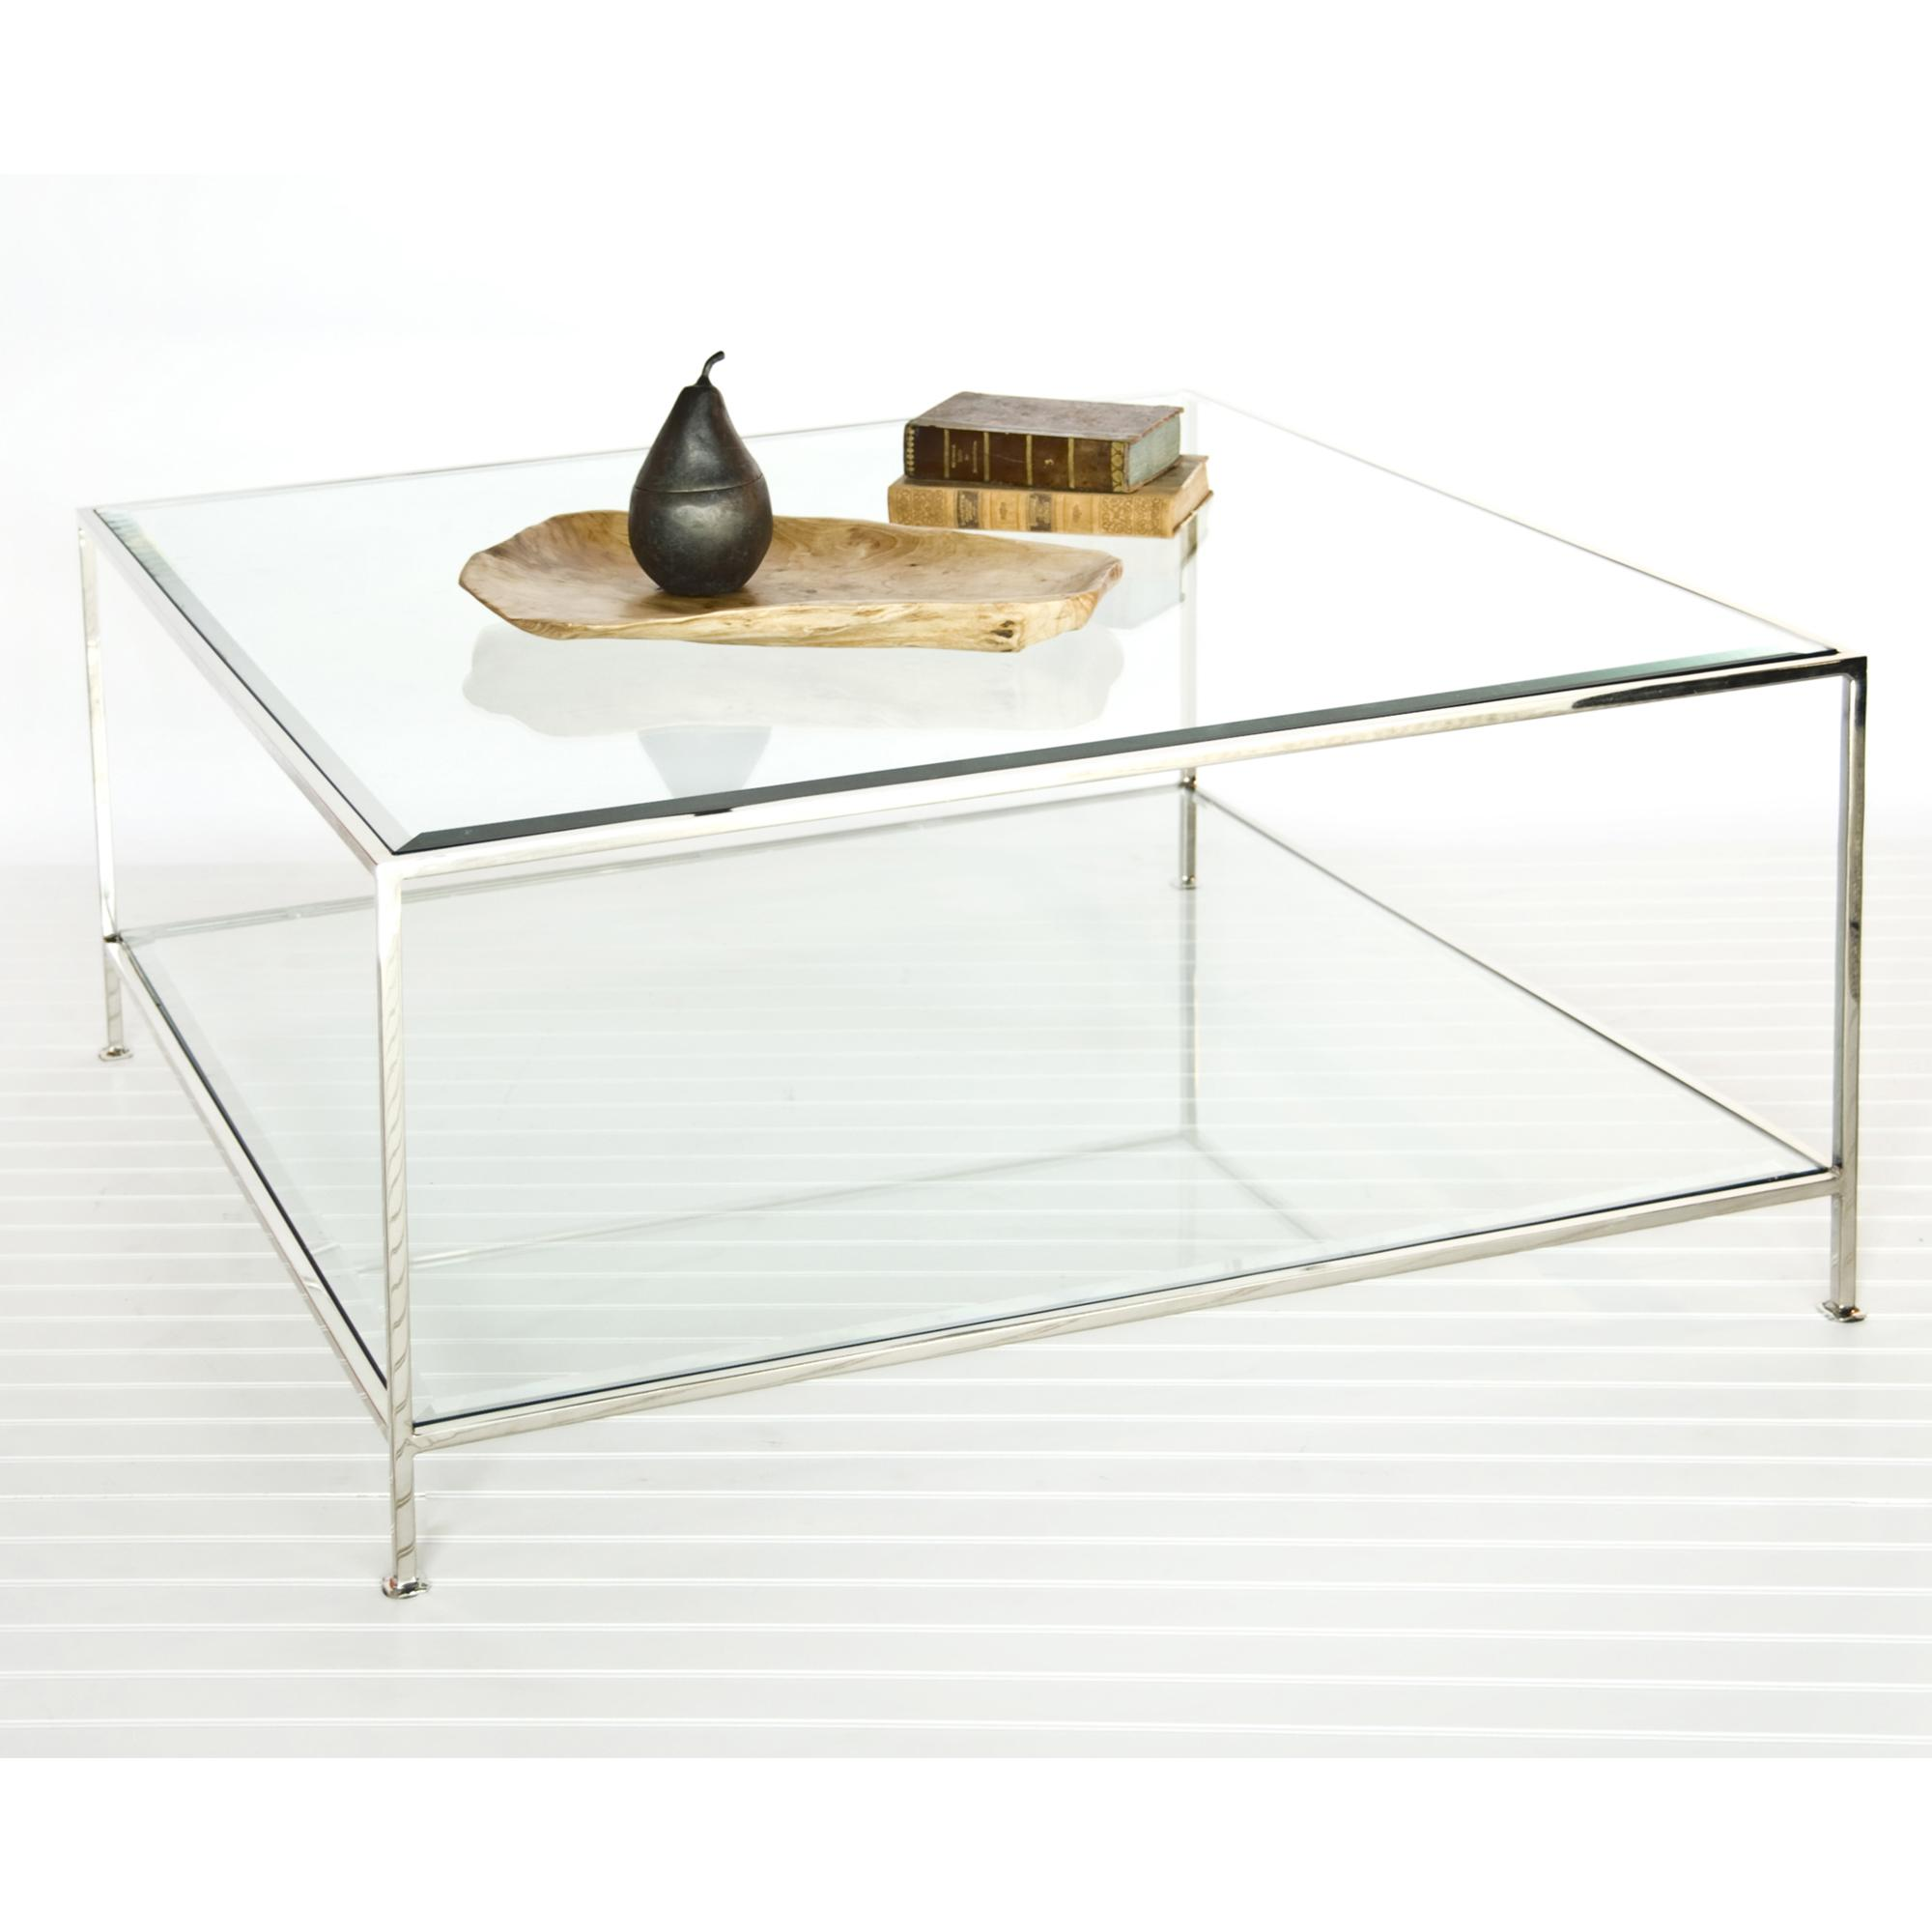 Square Modern Coffee Table Is This Lovely Recycled Wood Iron And Pine Shape Ensures That This Piece Will Make A Statement (View 7 of 10)